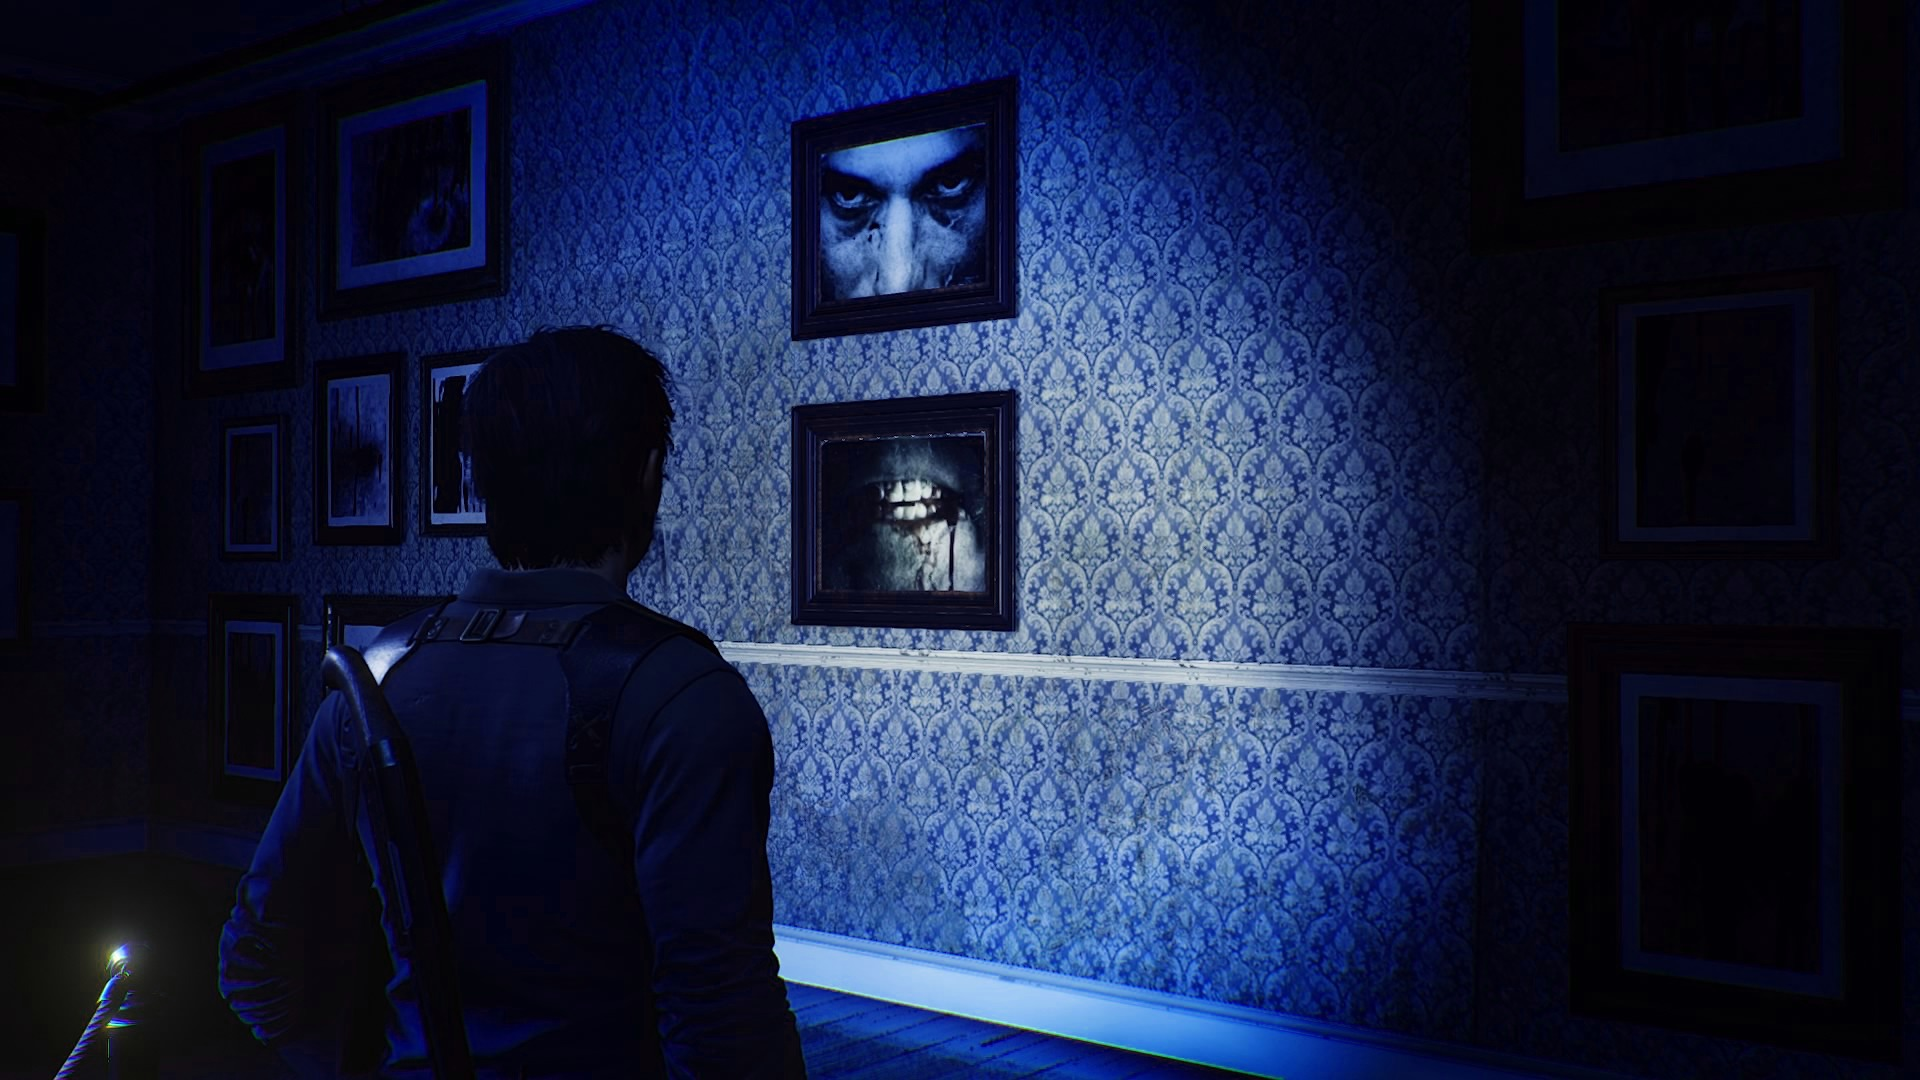 The-Evil-Within-2-20180803153433.jpg